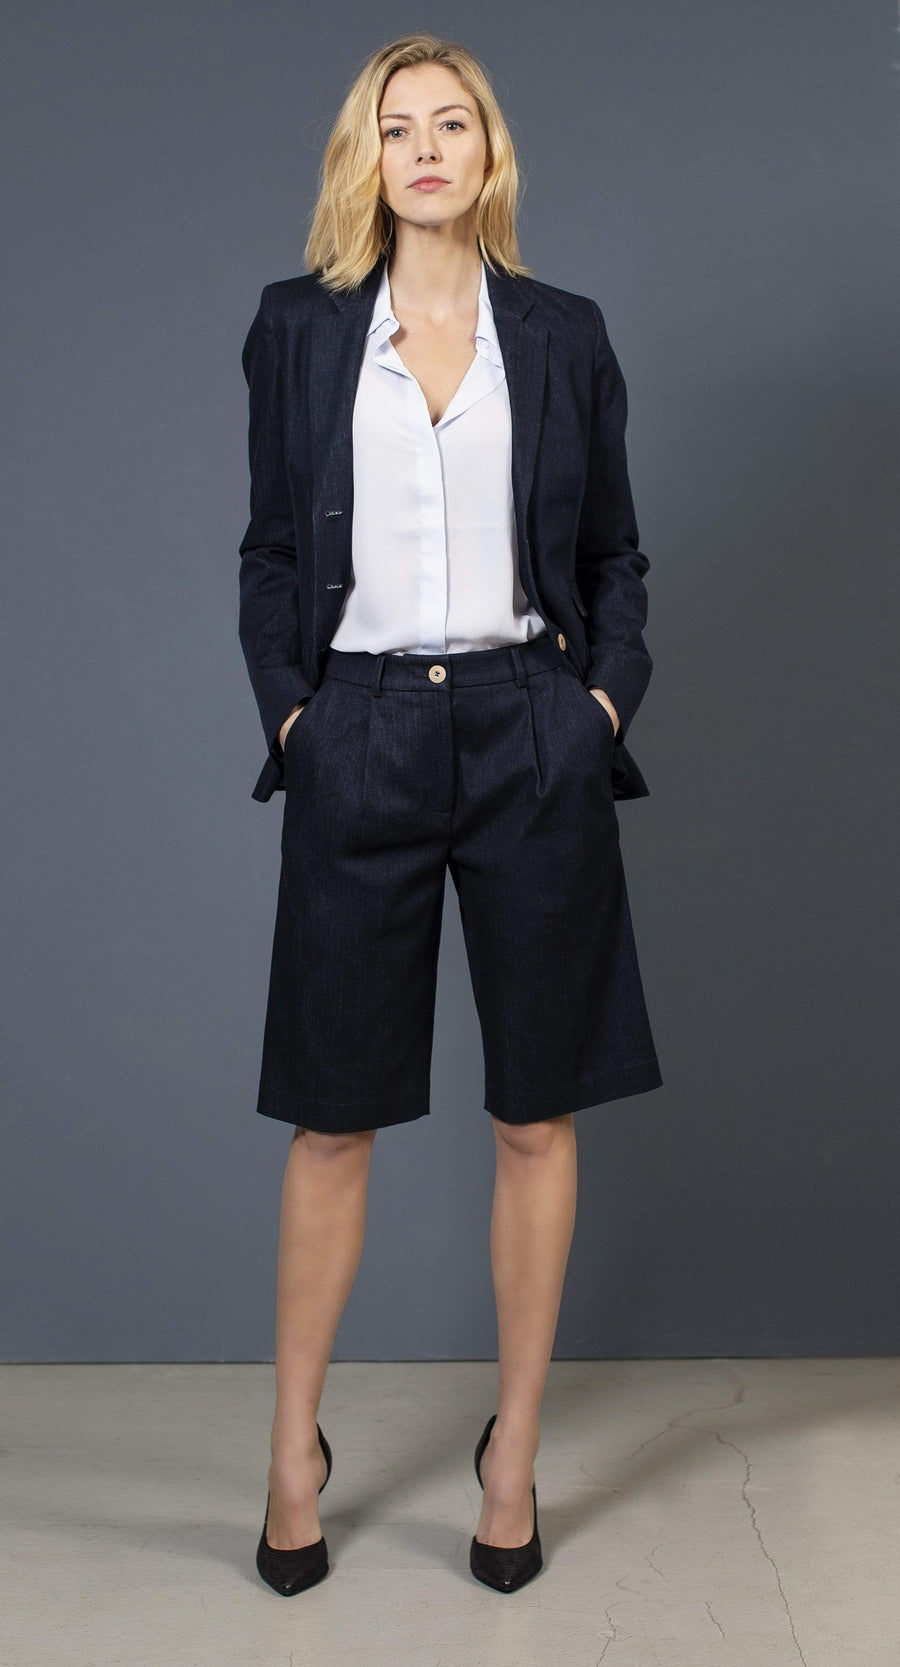 the Blue suit jacket ELLEN Jacket. Organic Cotton. sustainable fashion ethical fashion